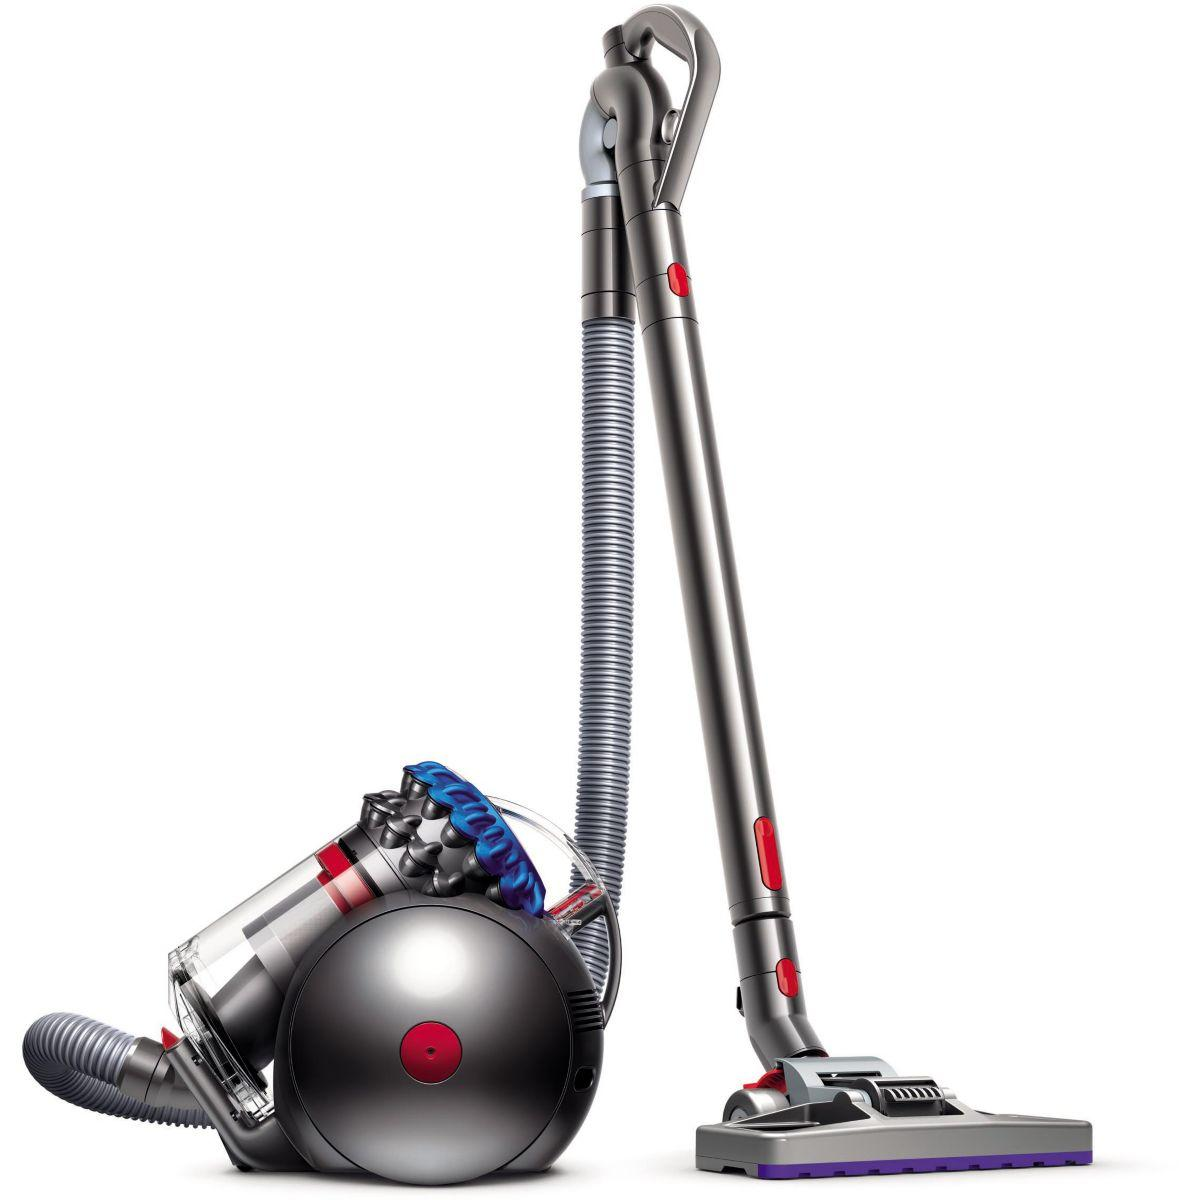 Aspirateur traîneau sans sac DYSON Big Ball UP TOP